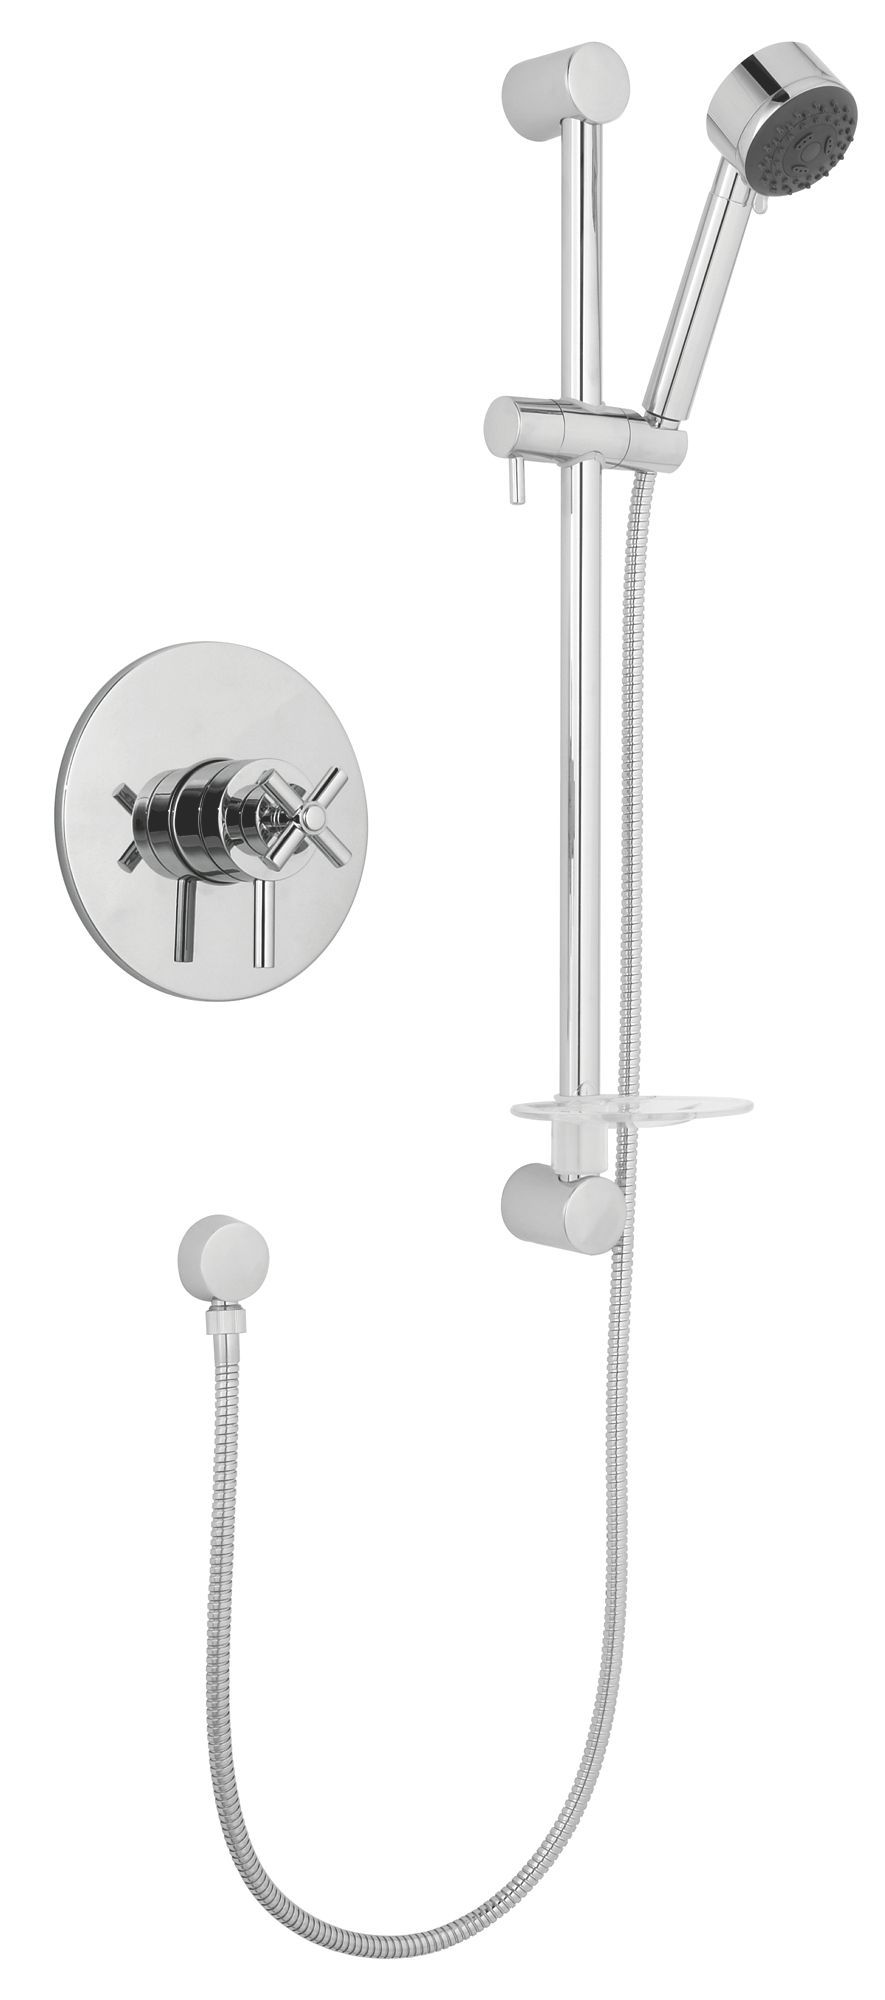 mira vision high pressure ceiling fed chrome thermostatic digital cooke lewis quattre chrome thermostatic concentric mixer